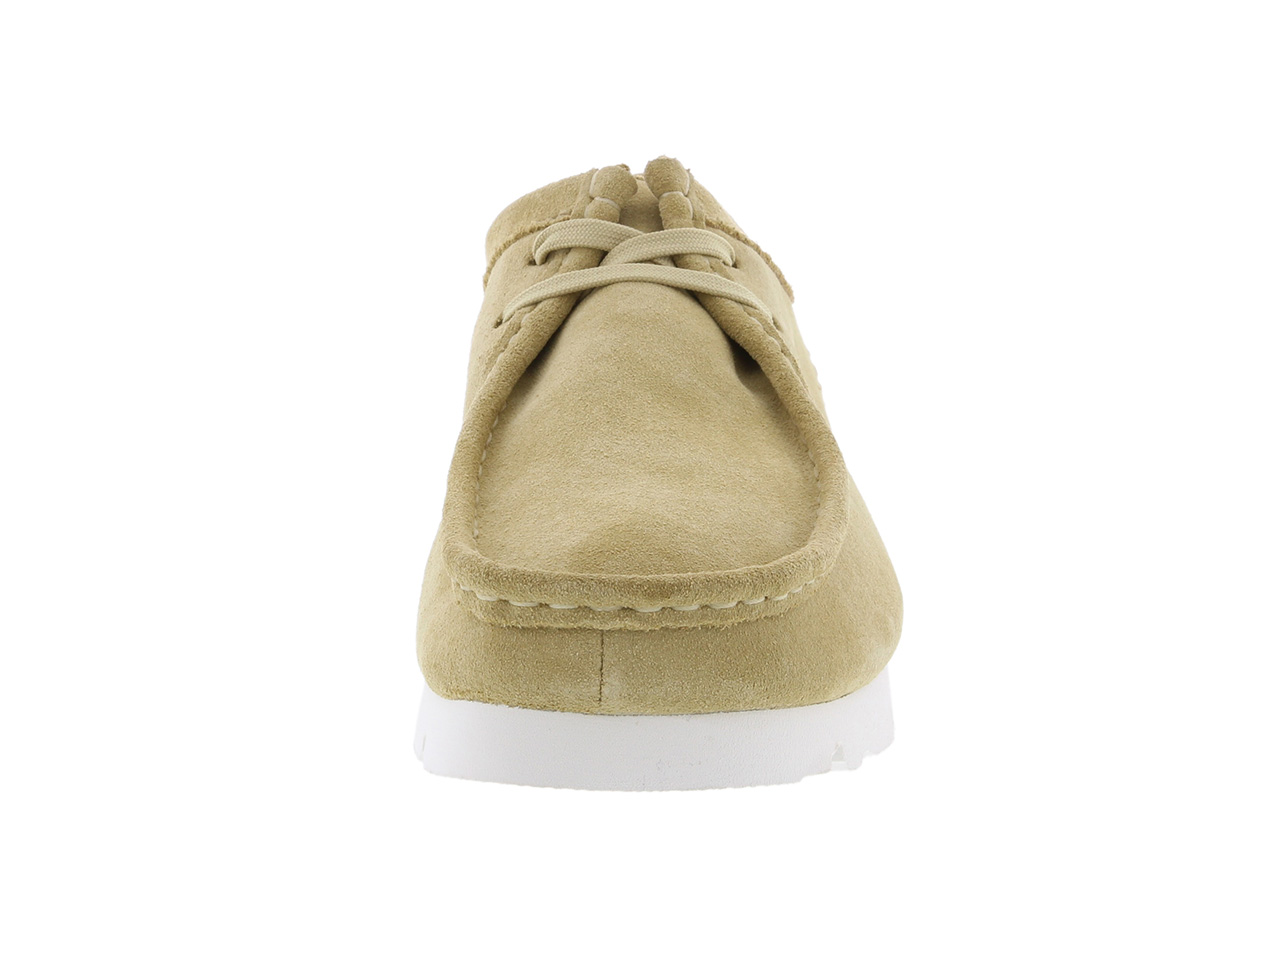 【10%OFF】Clarks WallabeeGTX Maple Suede - 26149450